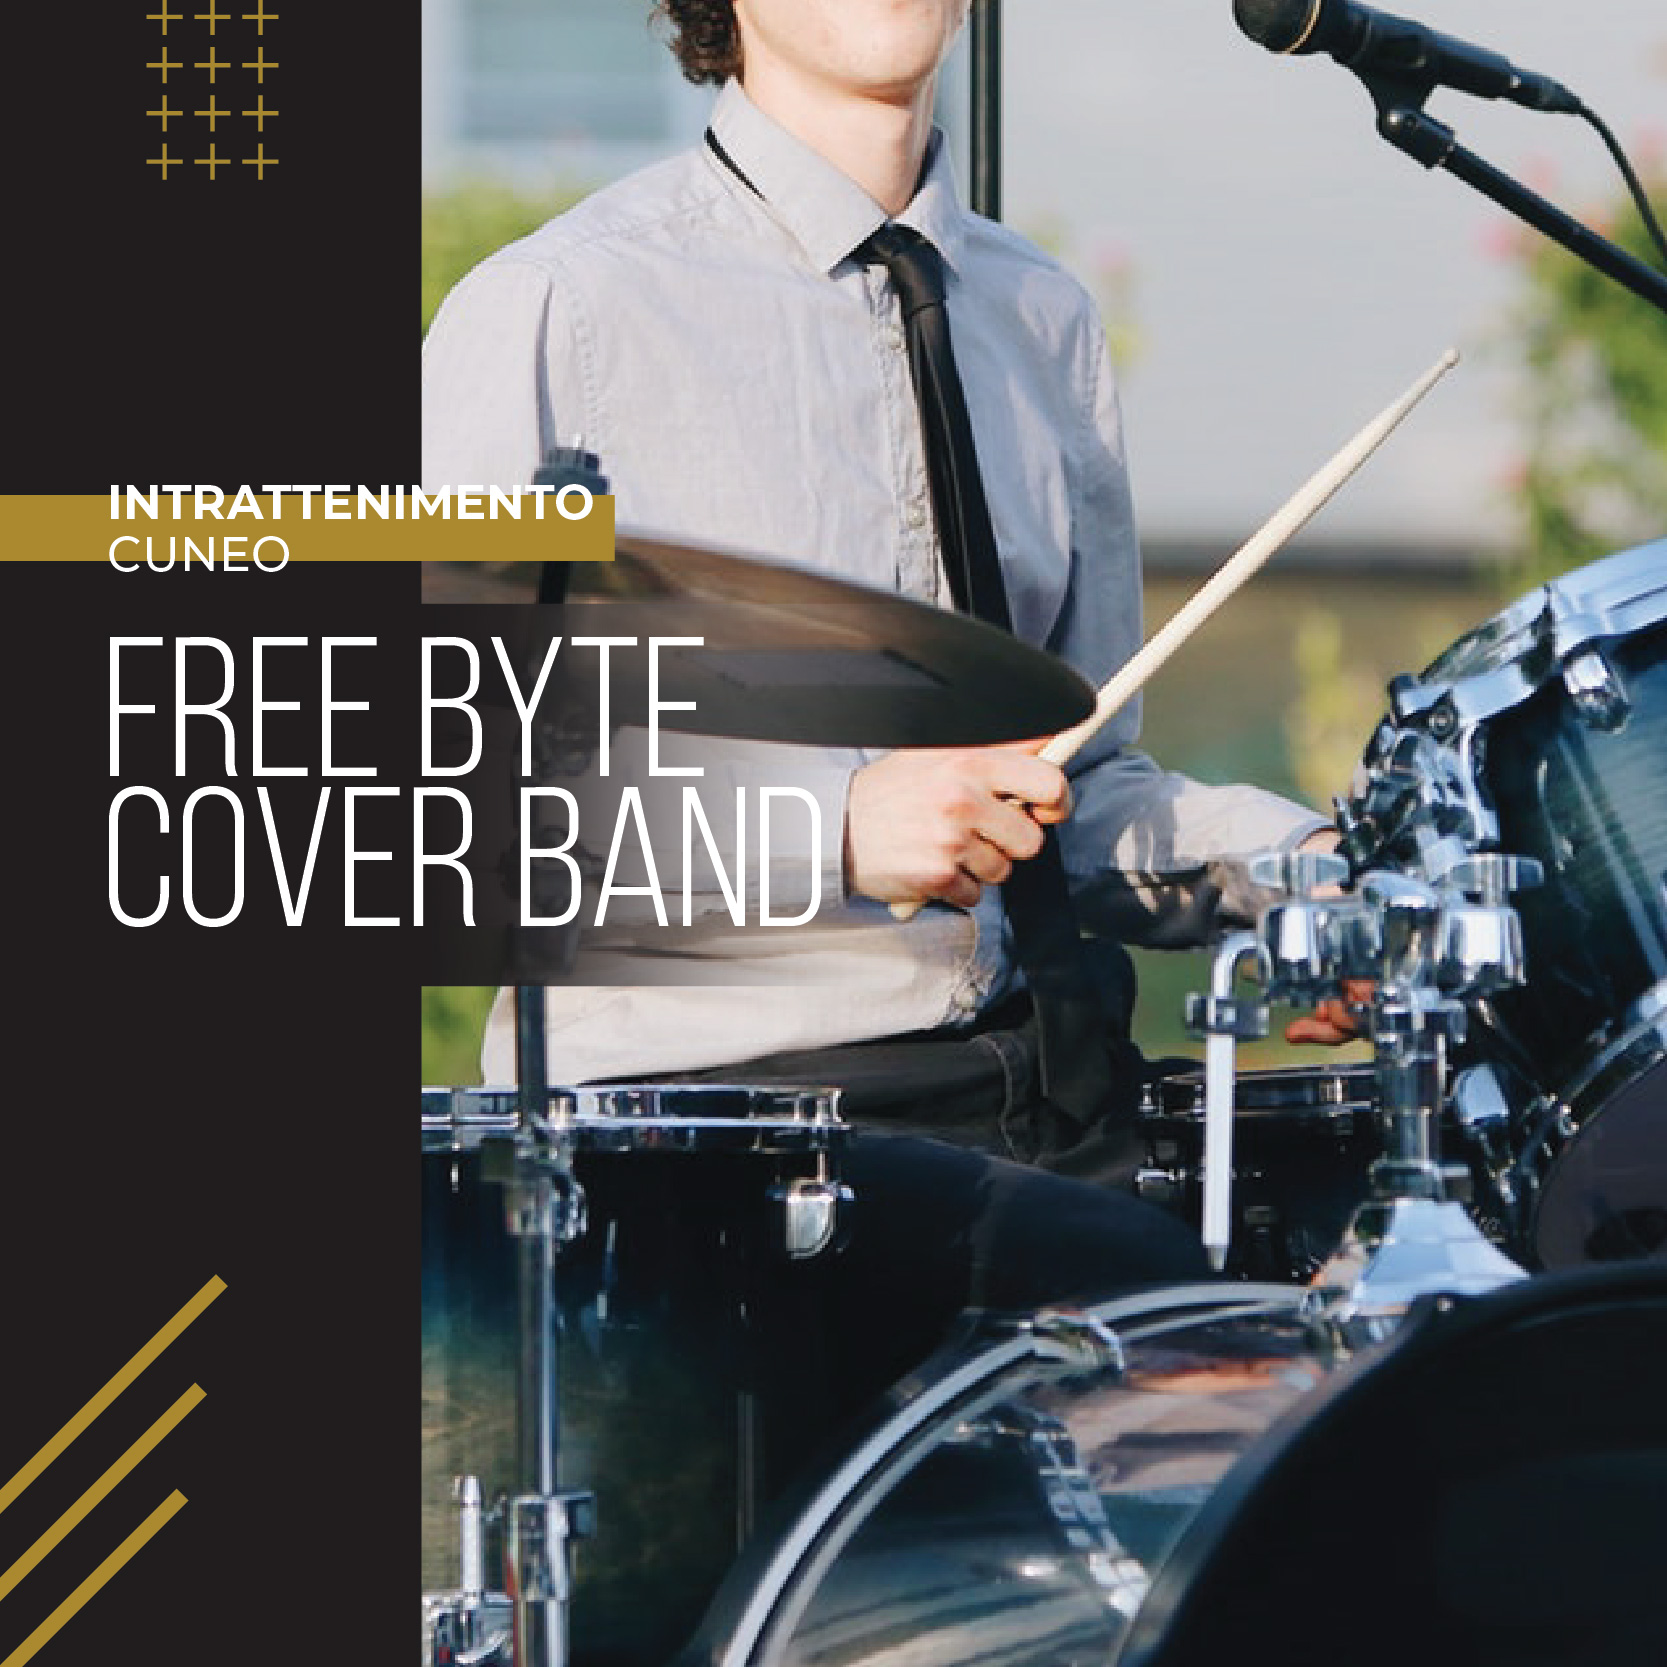 FREE BYTE - COVER BAND